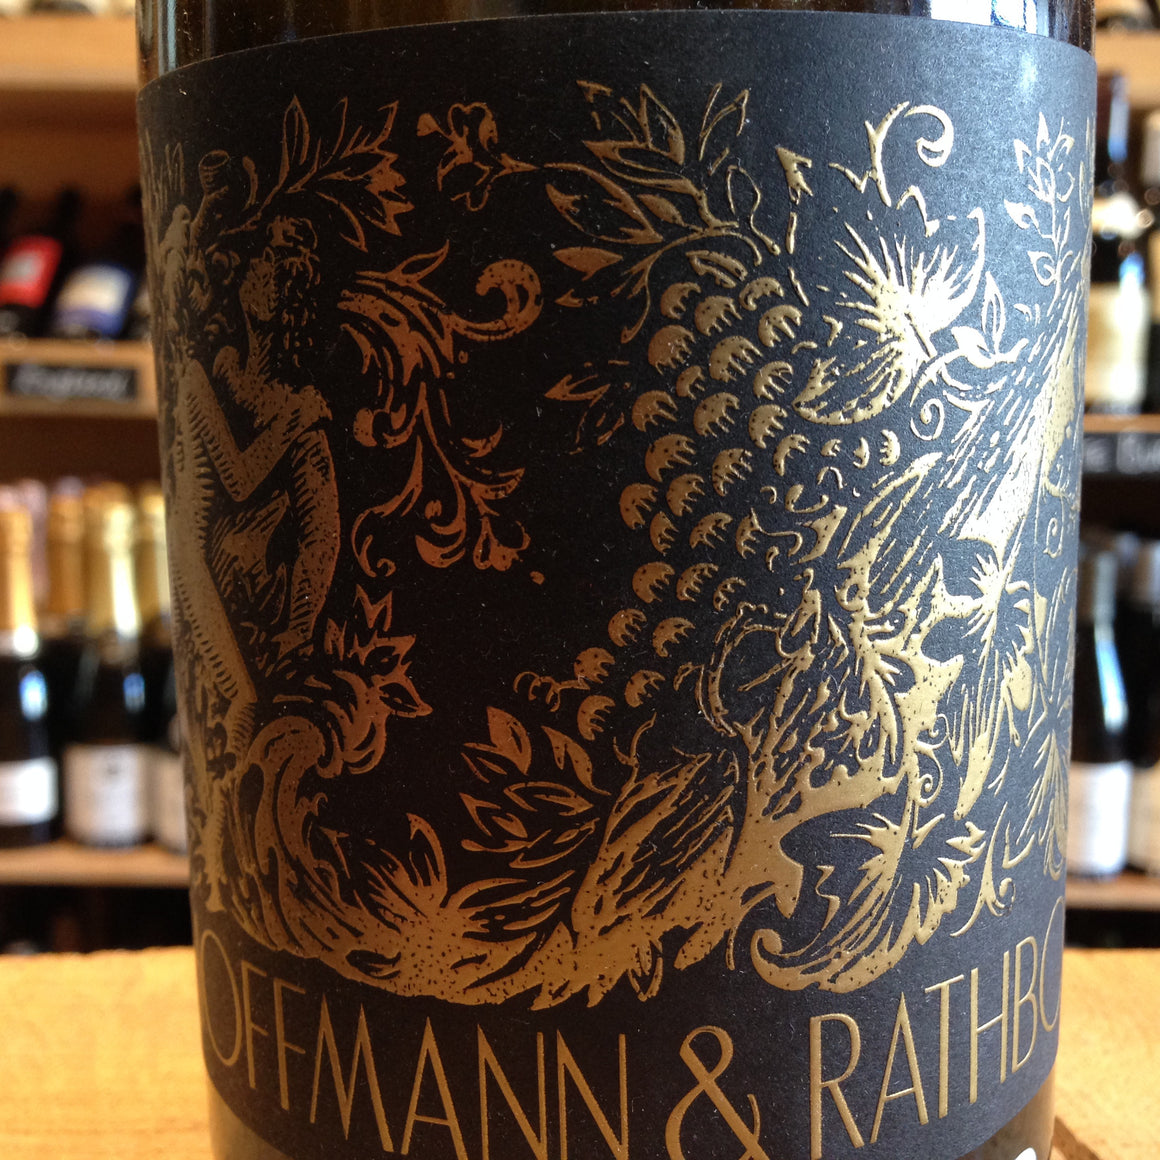 Hoffmann & Rathbone Rose Reserve Brut 2011 - Butlers Wine Cellar Brighton